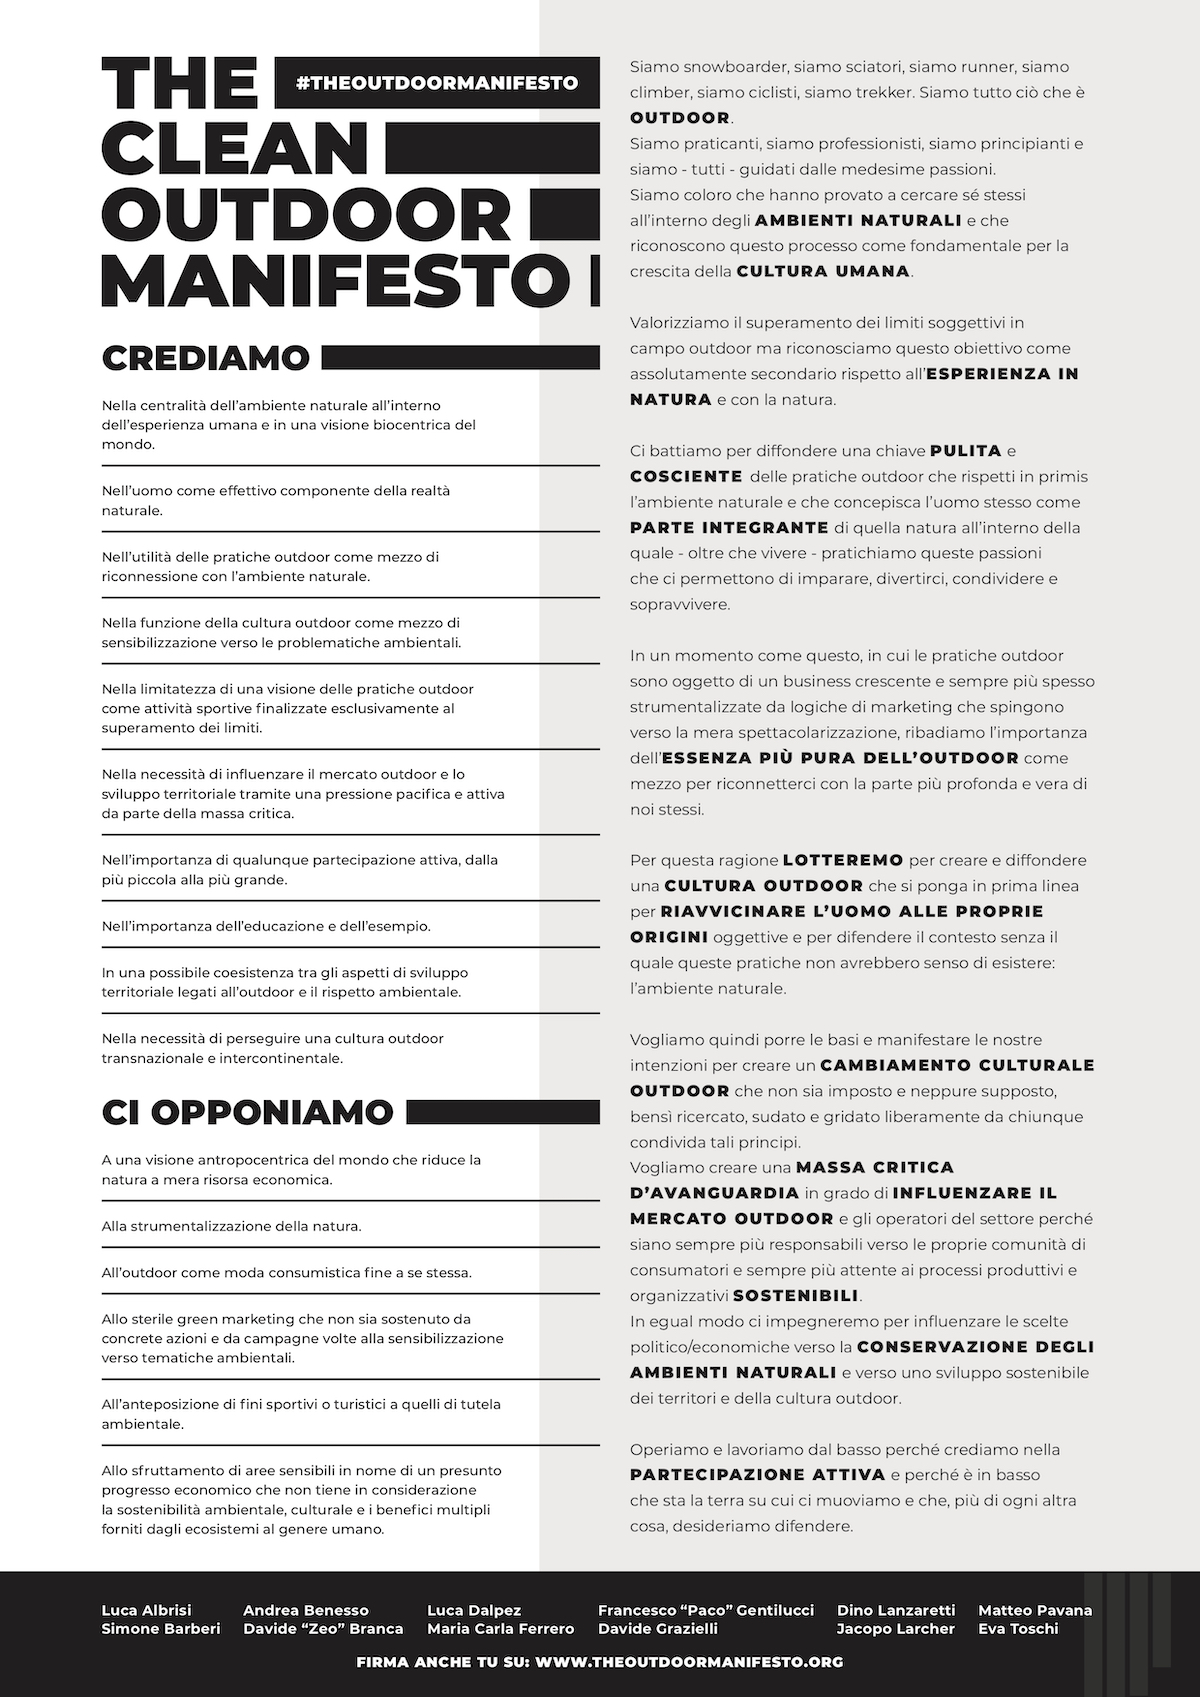 THE CLEAN OUTDOOR MANIFESTO 1